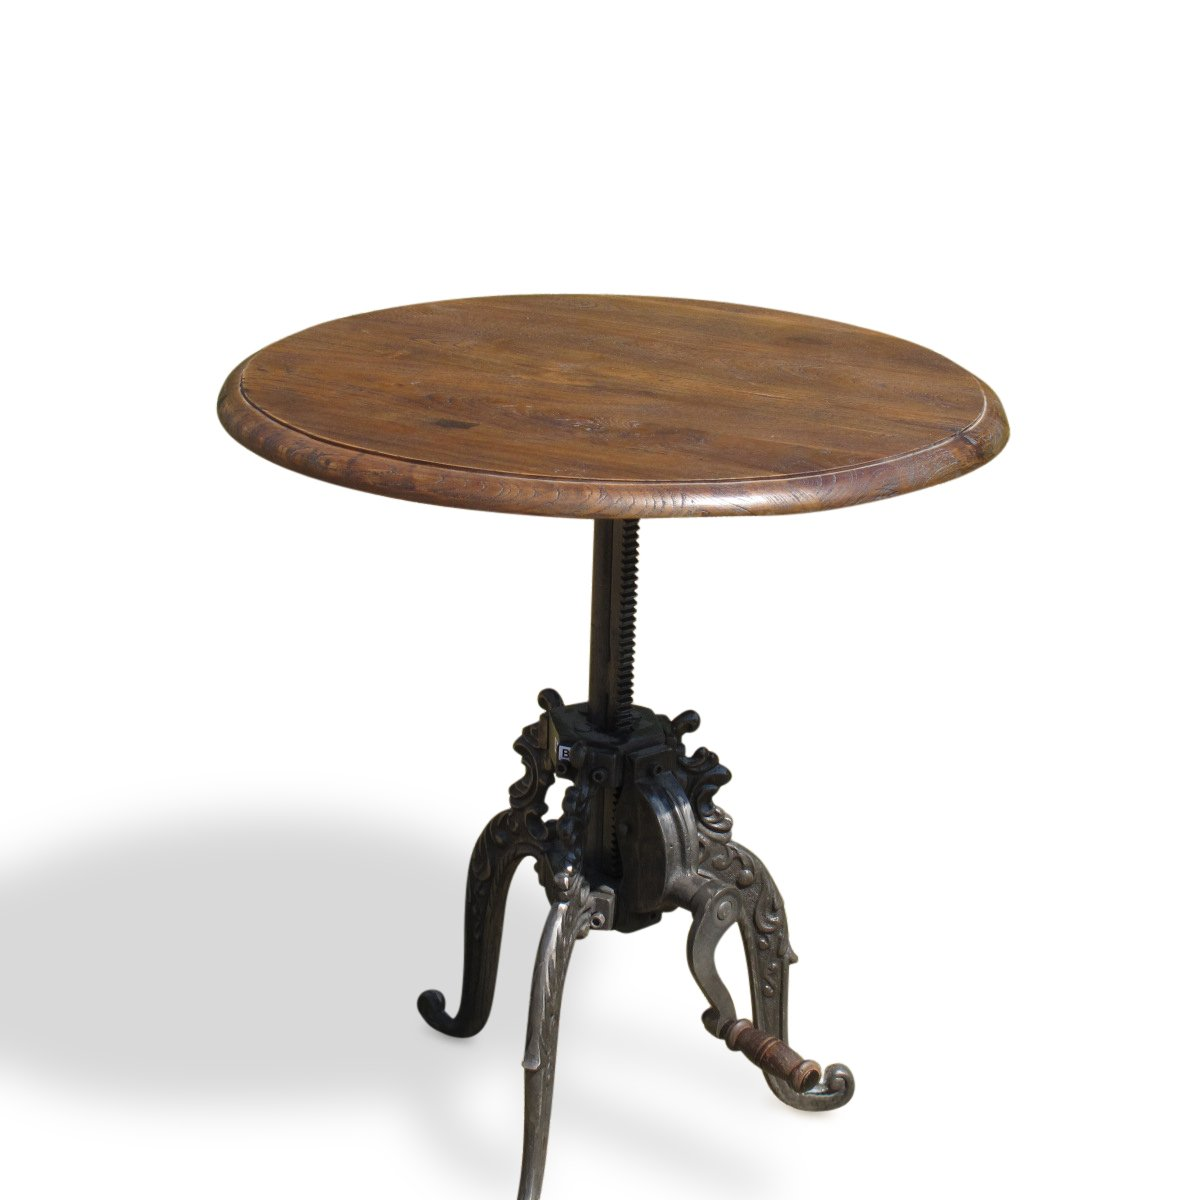 Adjustable Height Round Table - Industrial Style | Indigo Oriental Antiques